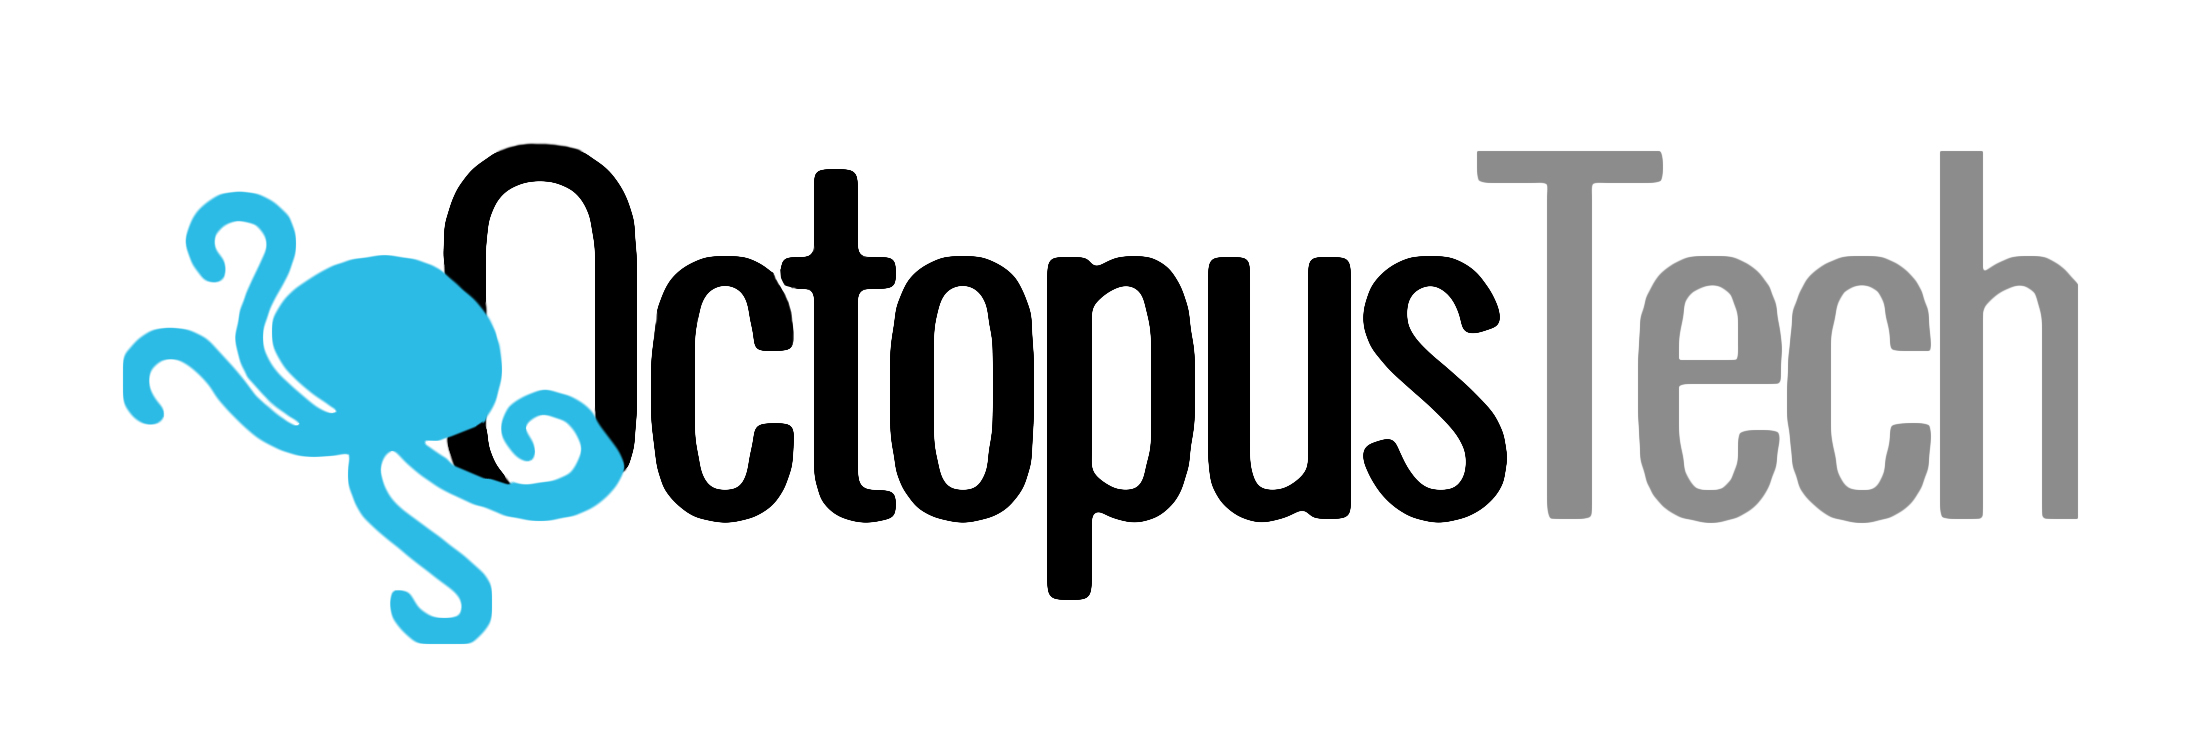 Octopus Tech Solutions Logo